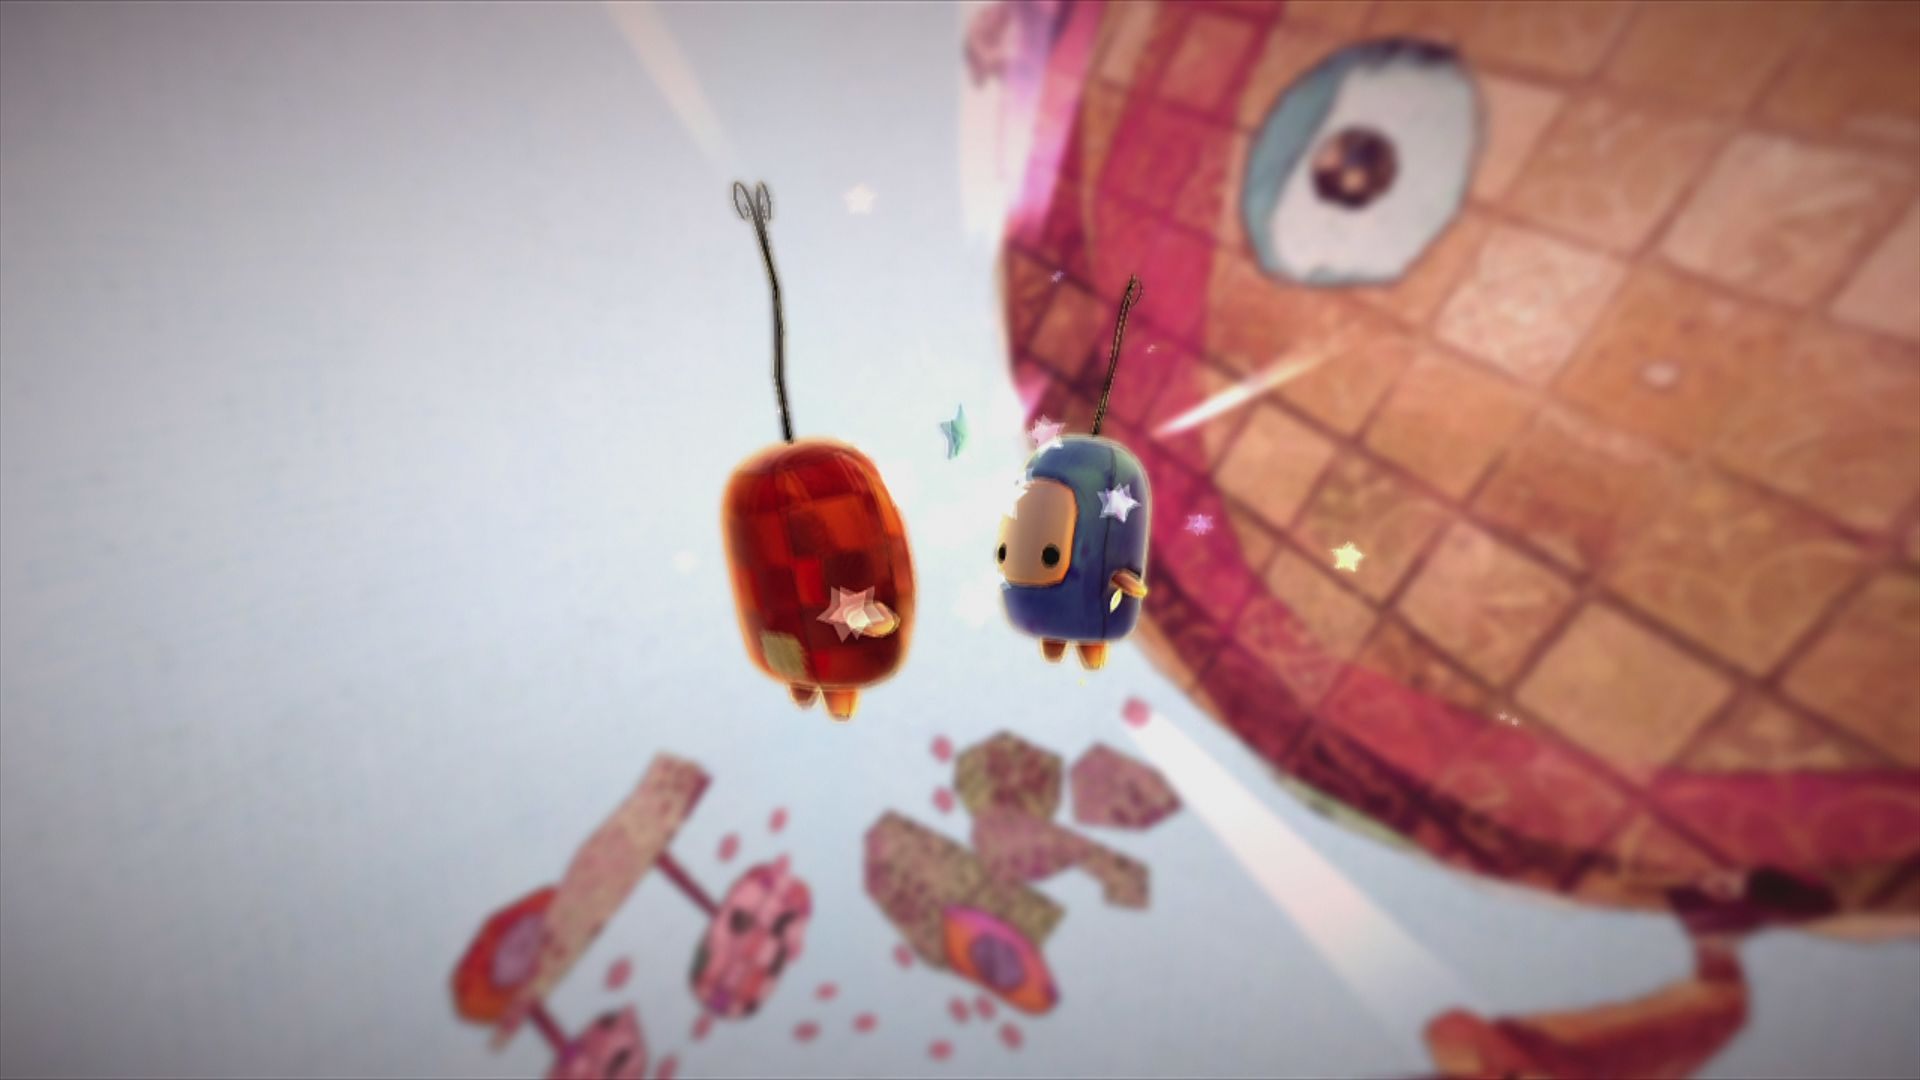 ilomilo Xbox 360 Once you found your buddy and finished a level, you will get a little dance